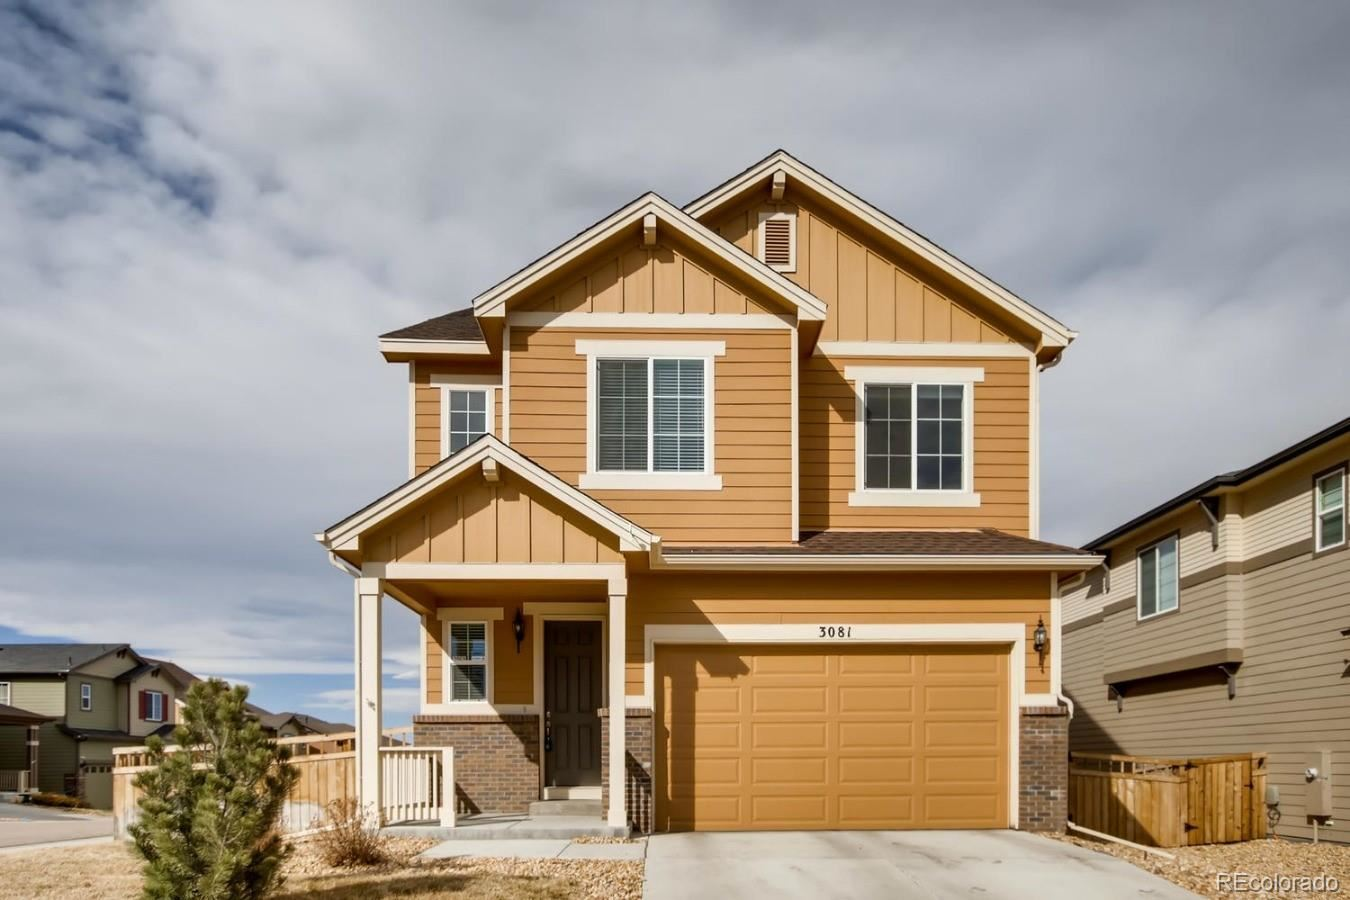 3081 Youngheart Way, Castle Rock, CO 80109 - #: 9800458